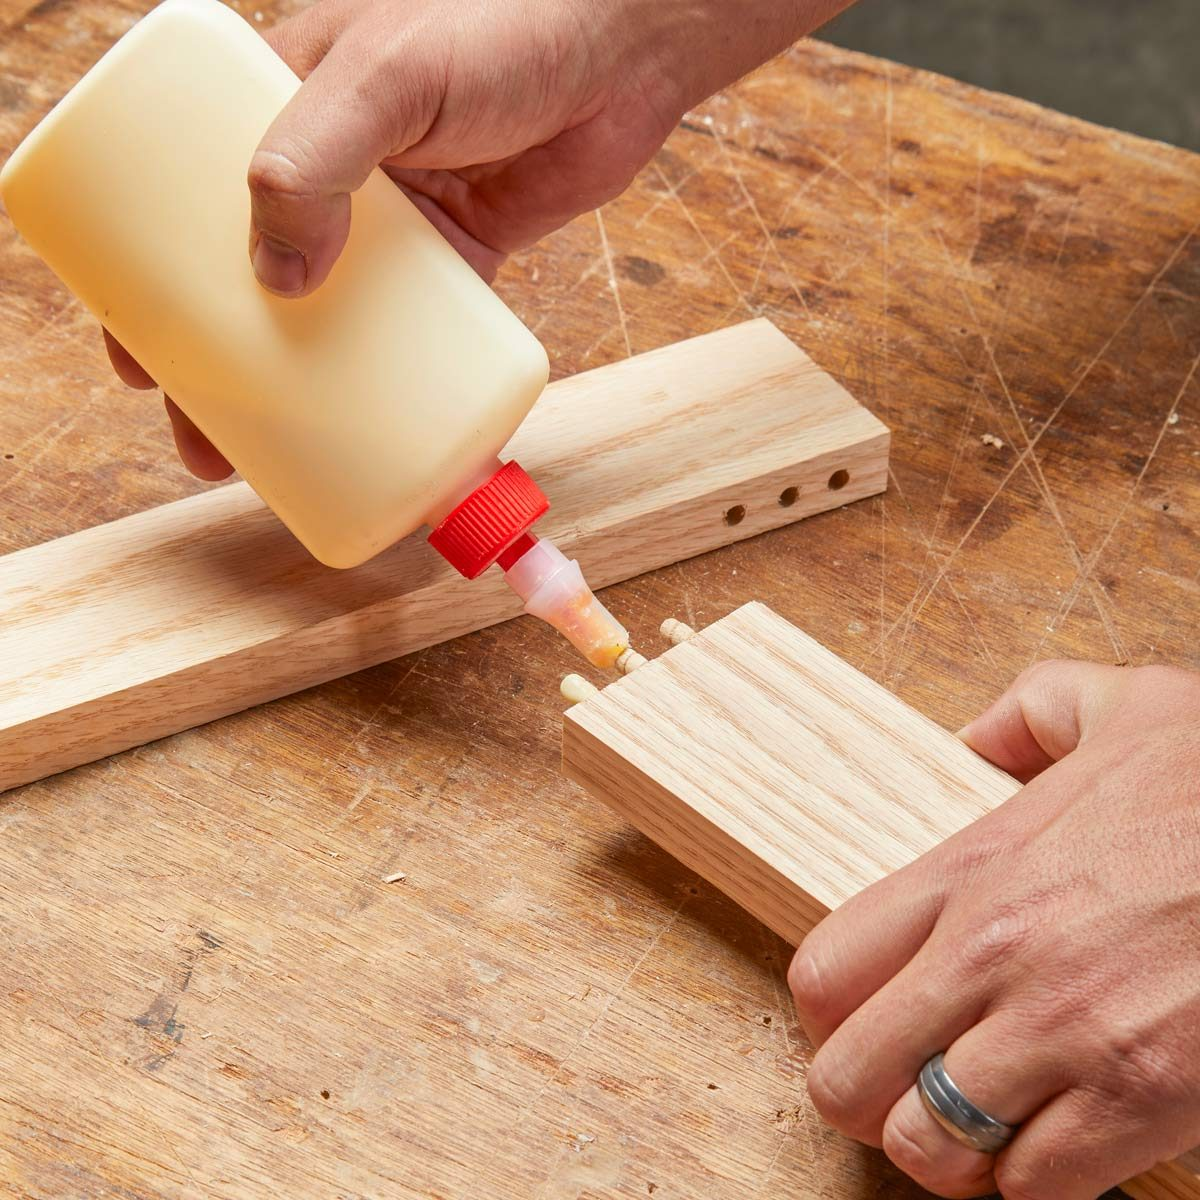 4 Simple Joinery Options Every Woodworker Should Know